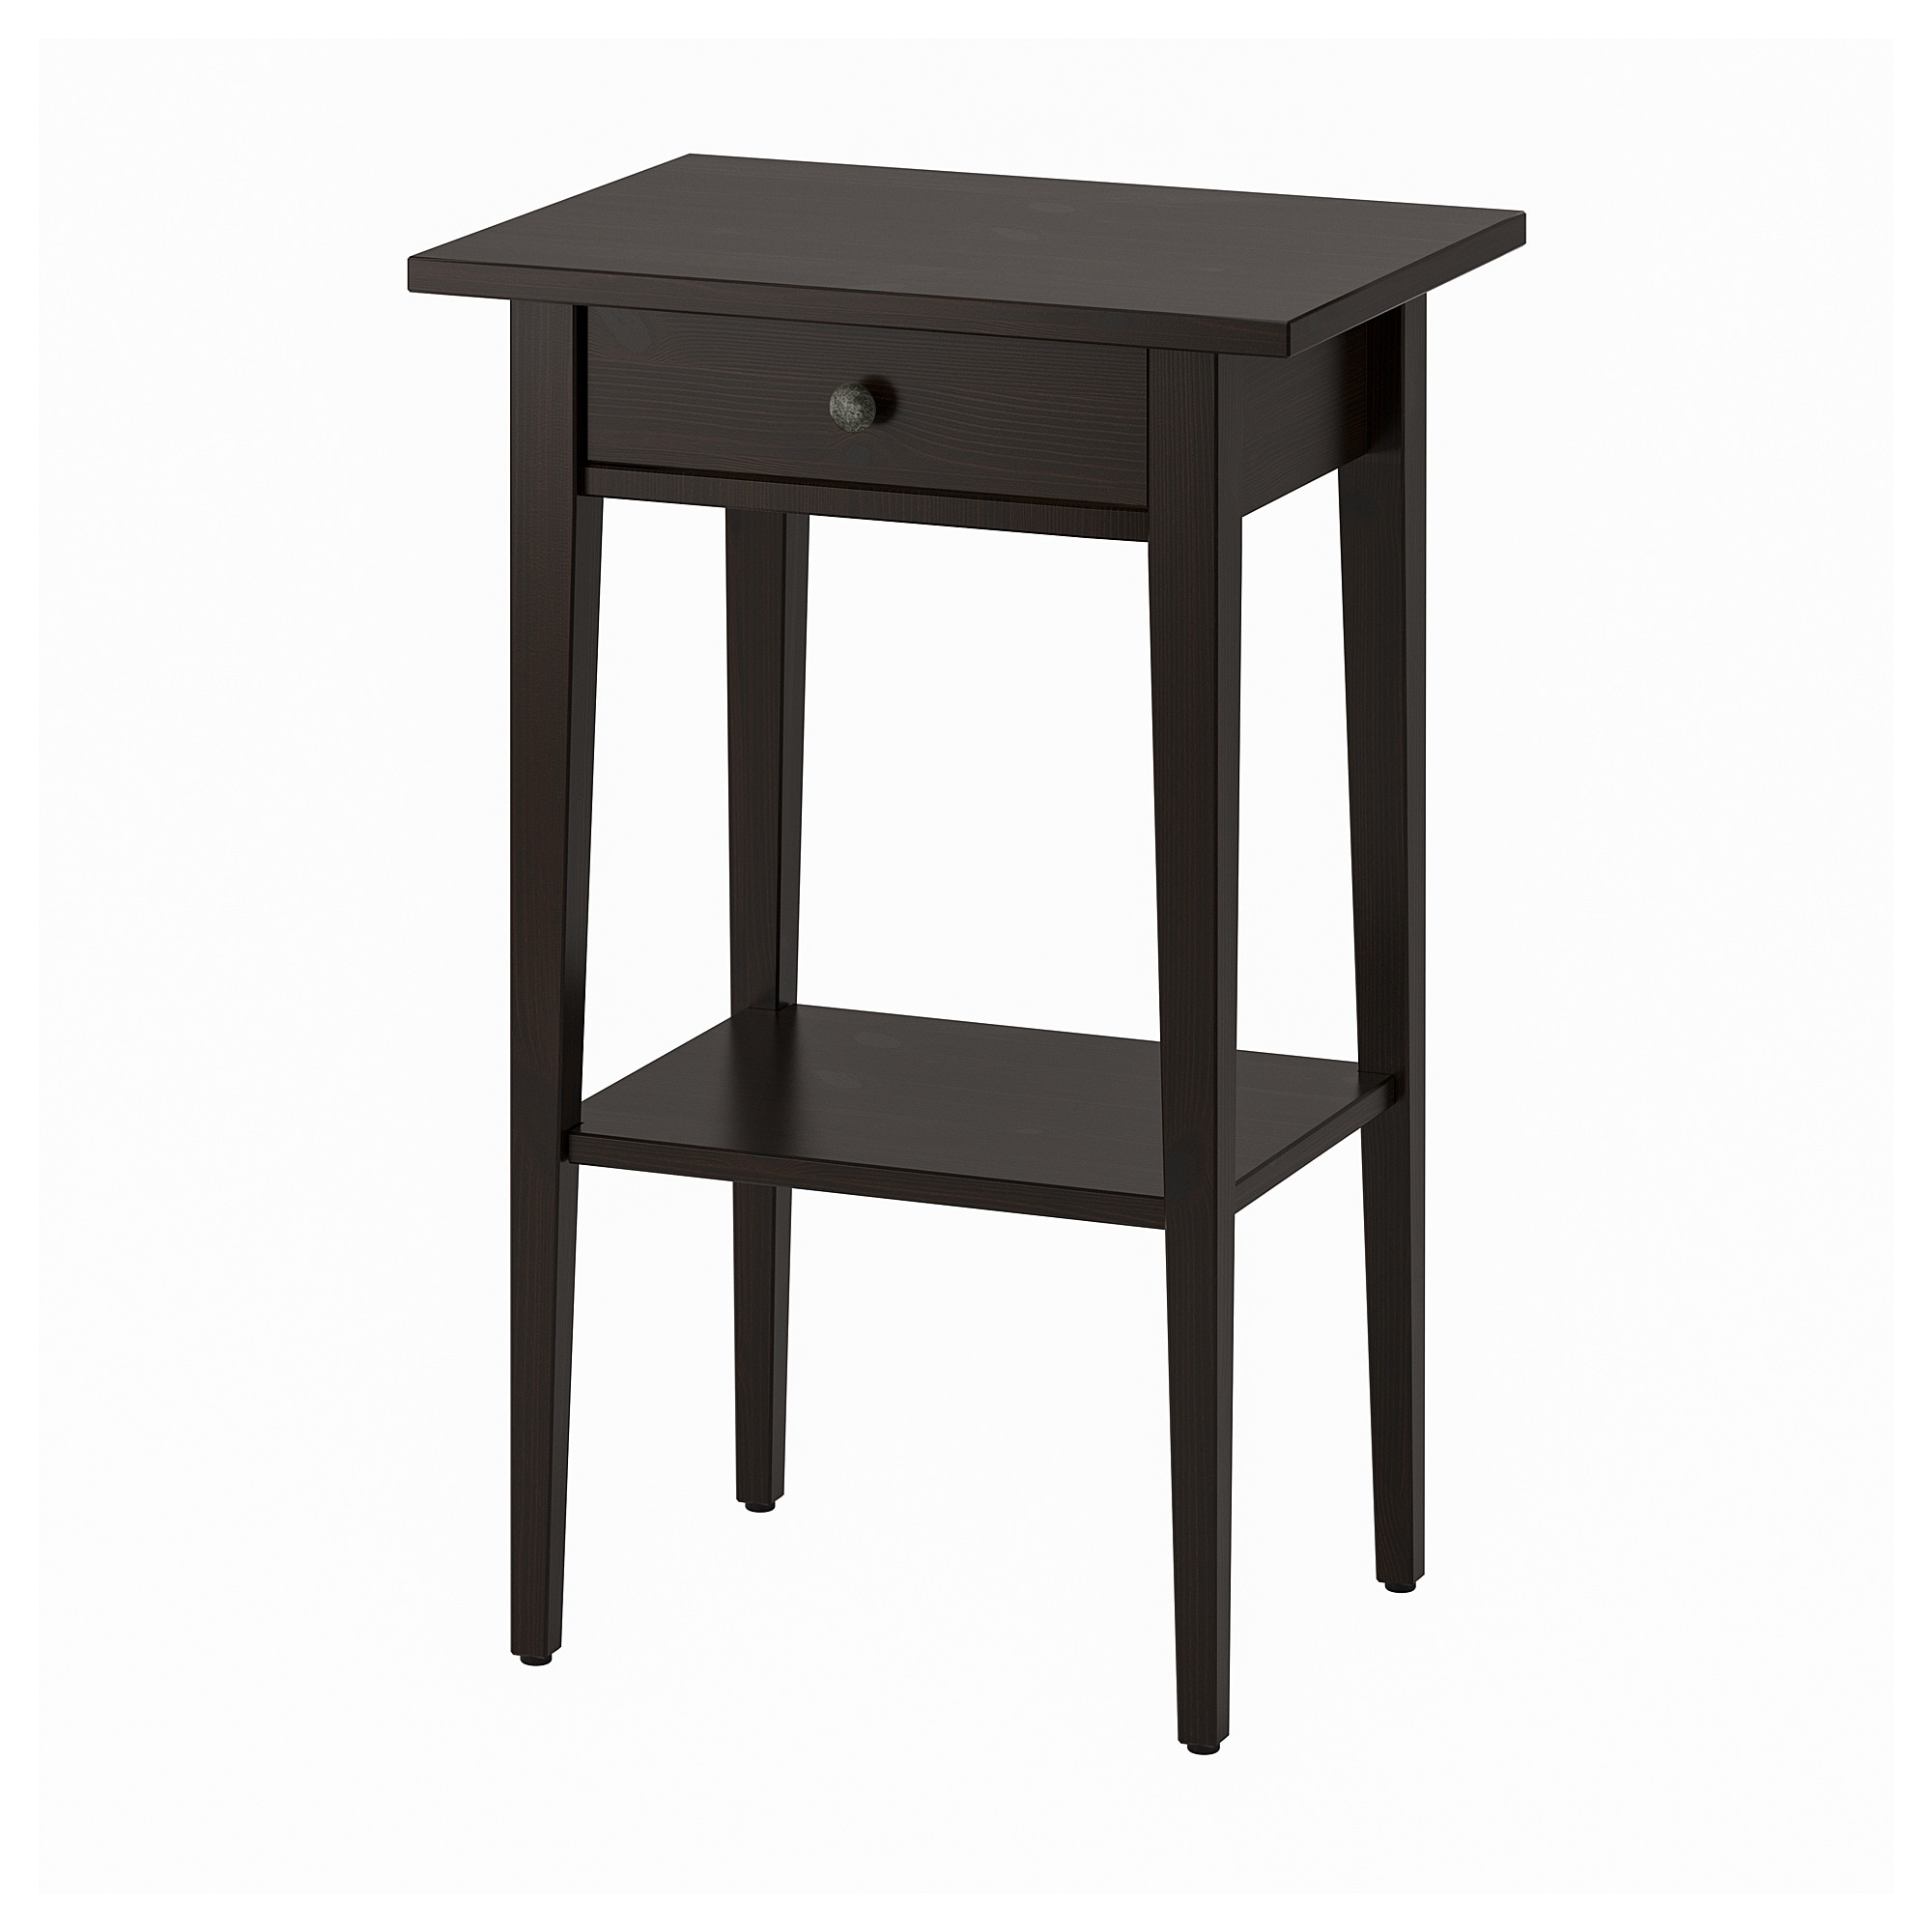 hot sale online 220fc f3a38 Nightstand HEMNES black-brown